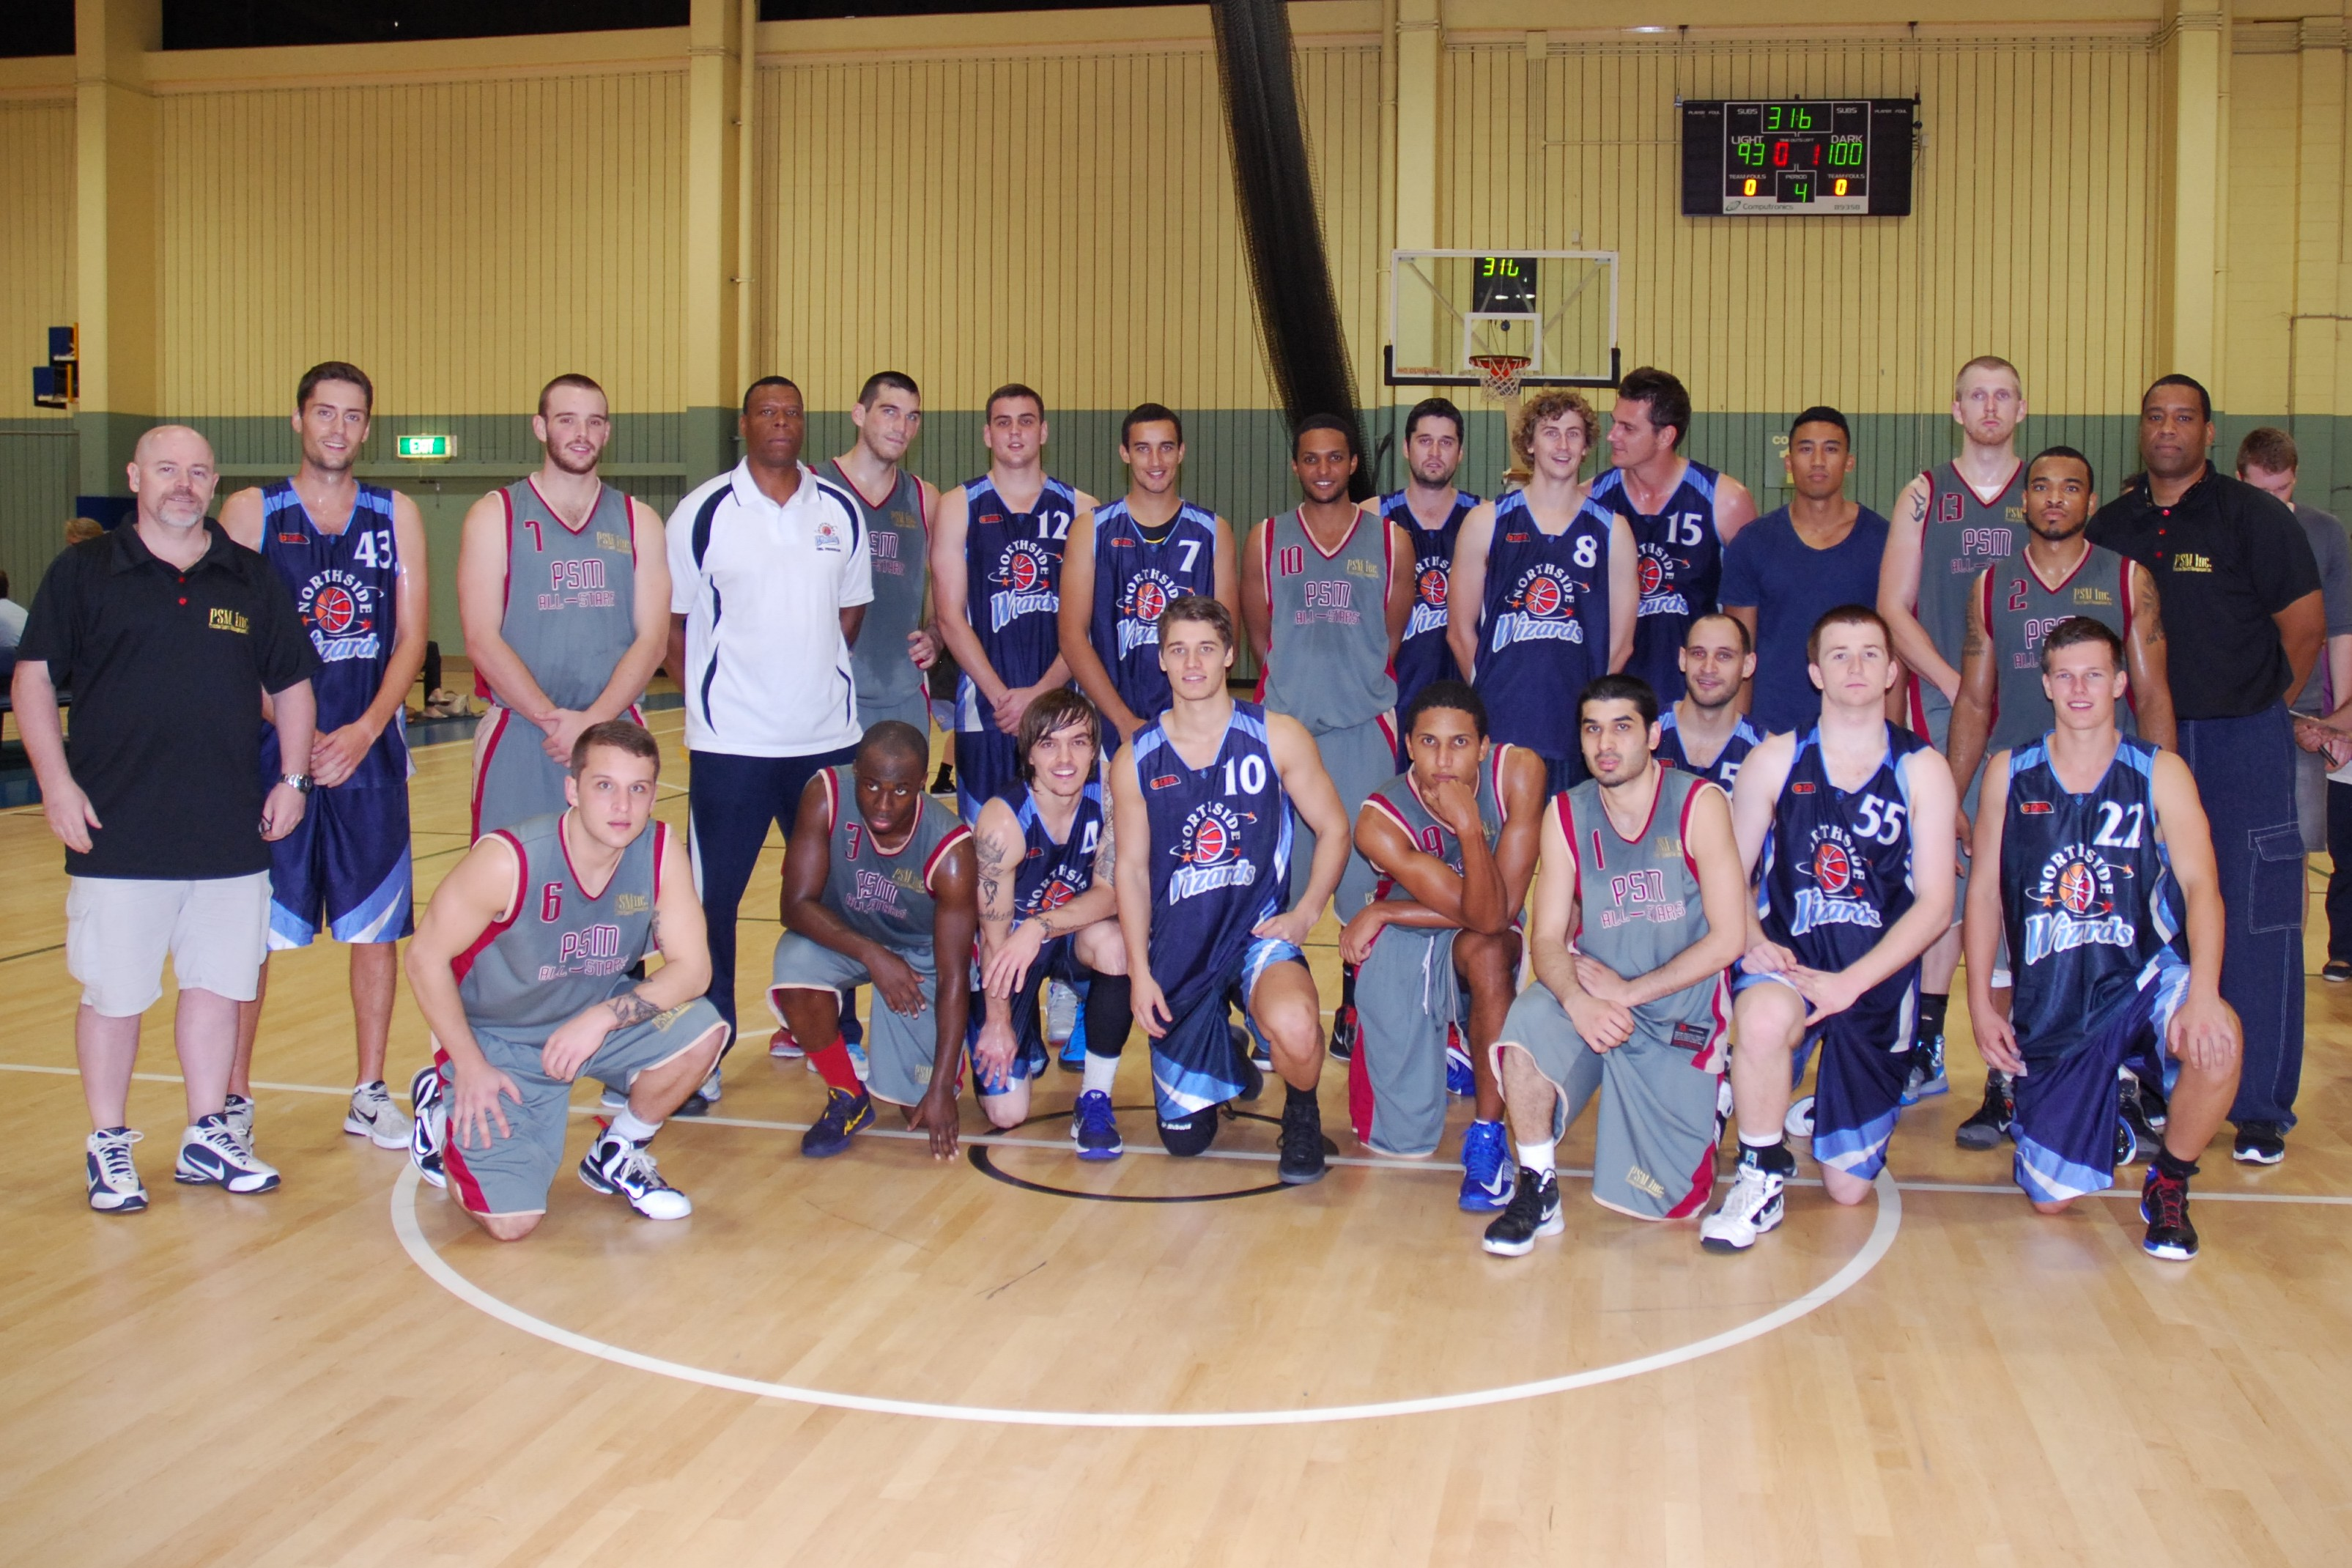 2013 Australia Summer League & Northside Wizards Teams